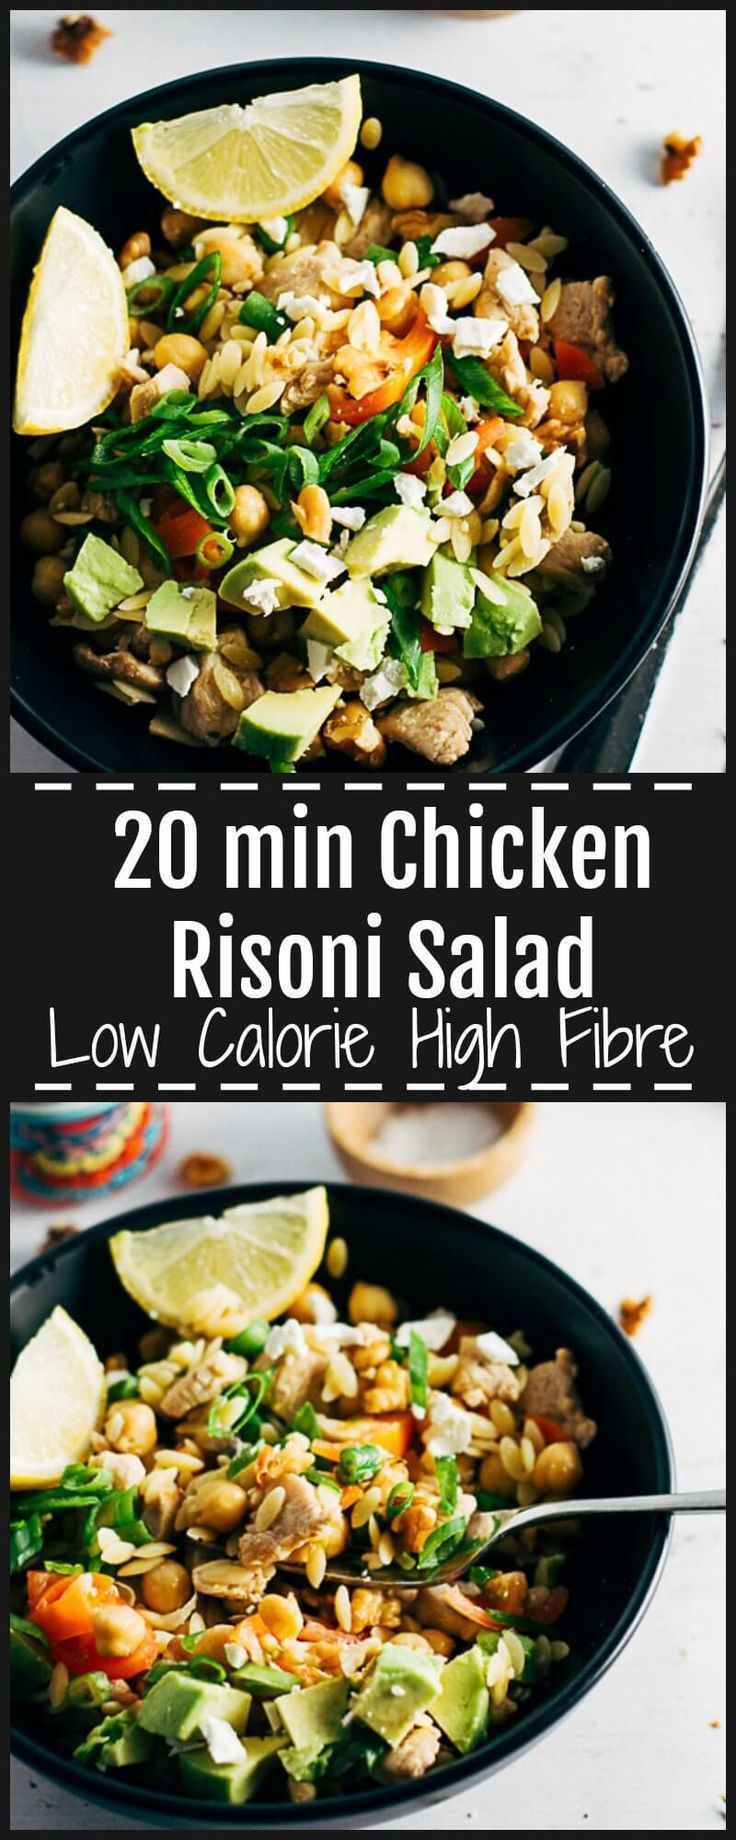 This Chicken Risoni Salad is light, refreshing, tangy and filling with walnuts, avocado & fetta. High in Fibre & protein & low in calories. Lunch or Dinner. via @https://au.pinterest.com/sugarfreekitc/my-sugar-free-kitchen-on-the-blog/